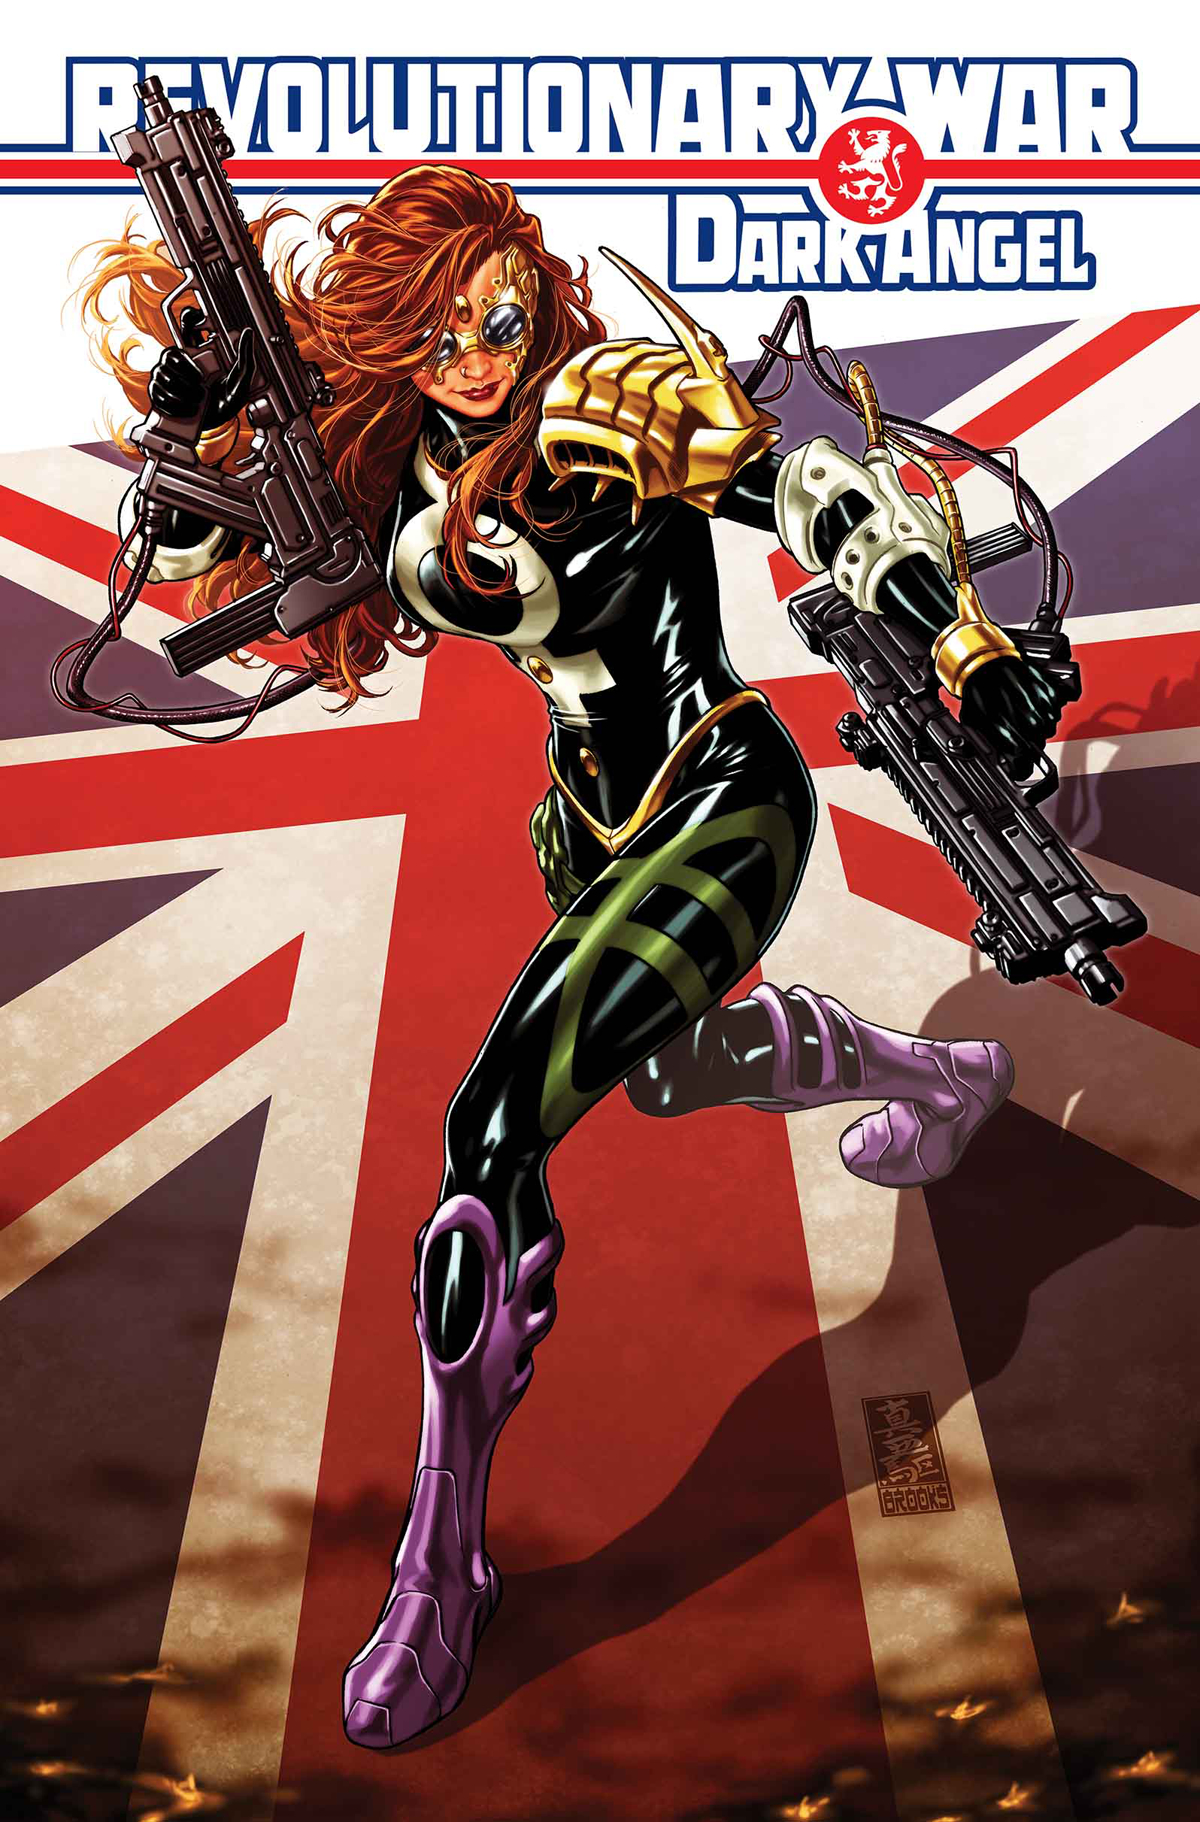 REVOLUTIONARY WAR DARK ANGEL #1